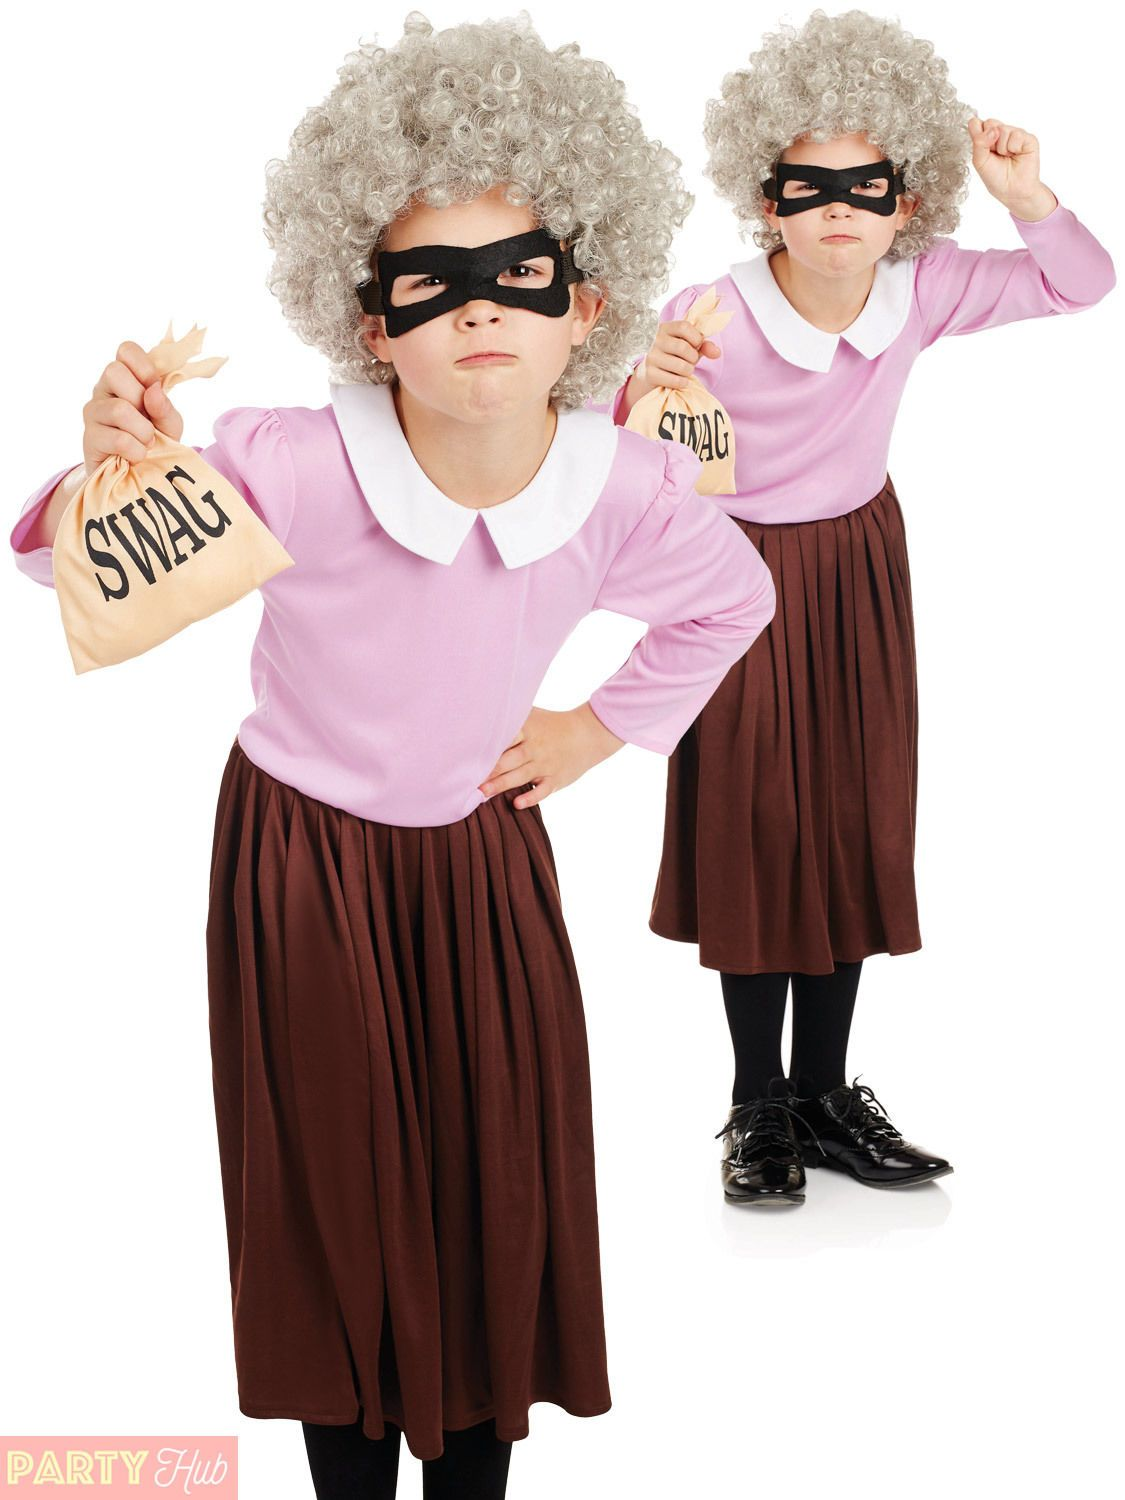 Girls Kids Childs Burglar Gangster Granny Fancy Dress Costume Book Day WIG